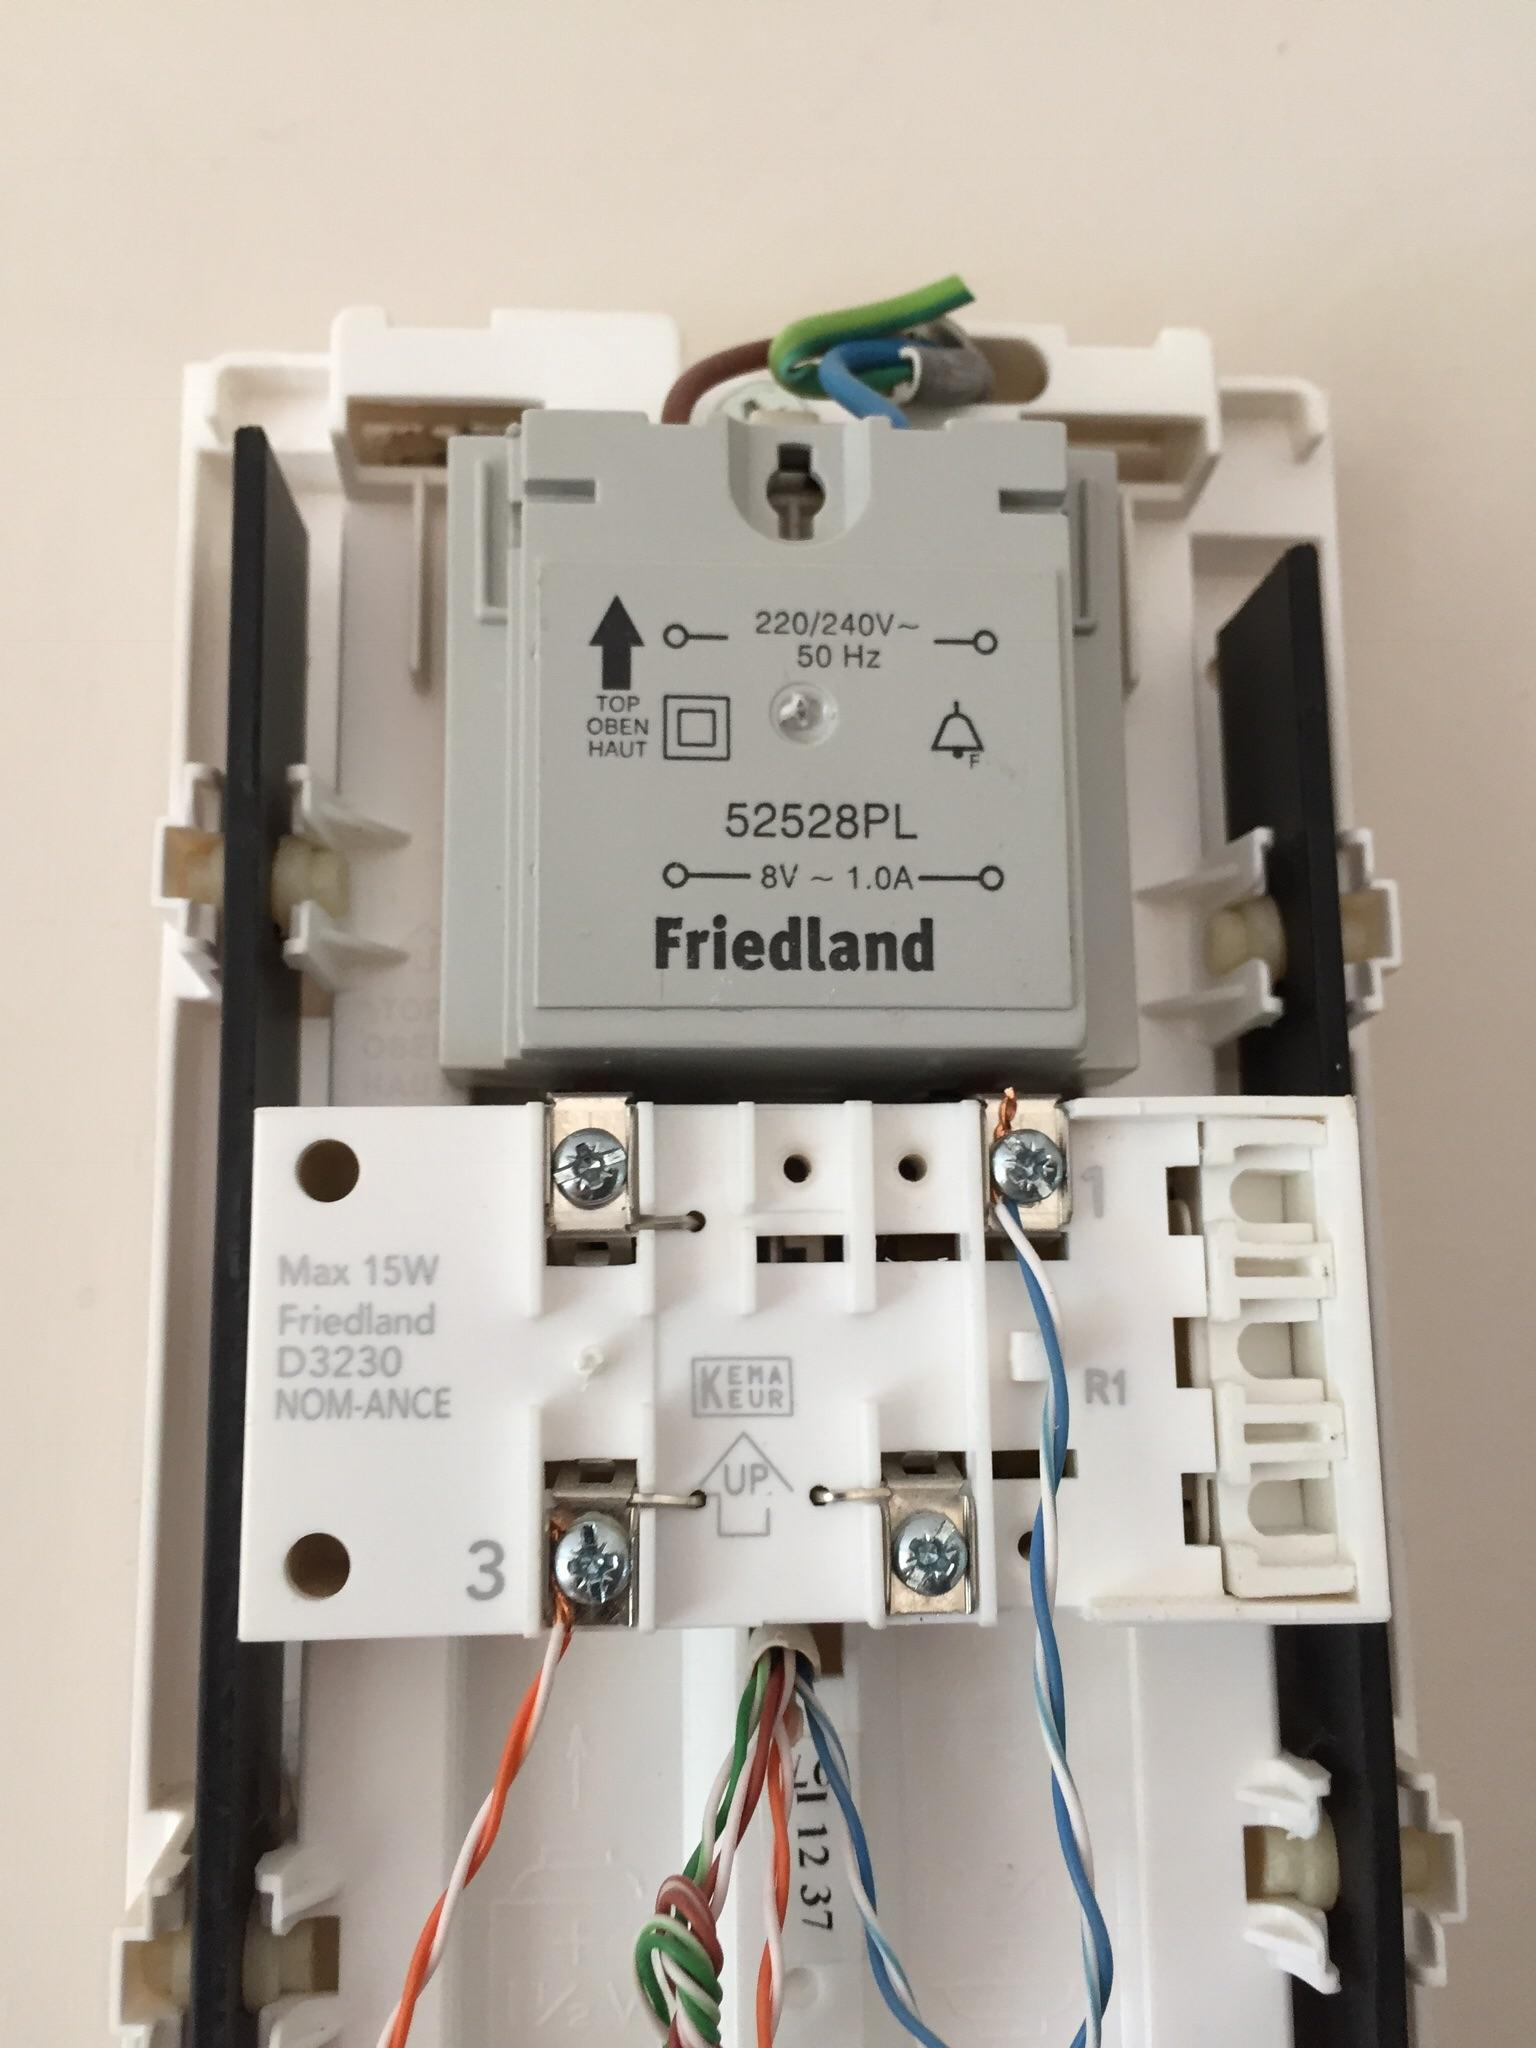 Installing Nest Hello Uk - What Are My Options With The Following - 2 Nest Hello 1 Transformer Wiring Diagram